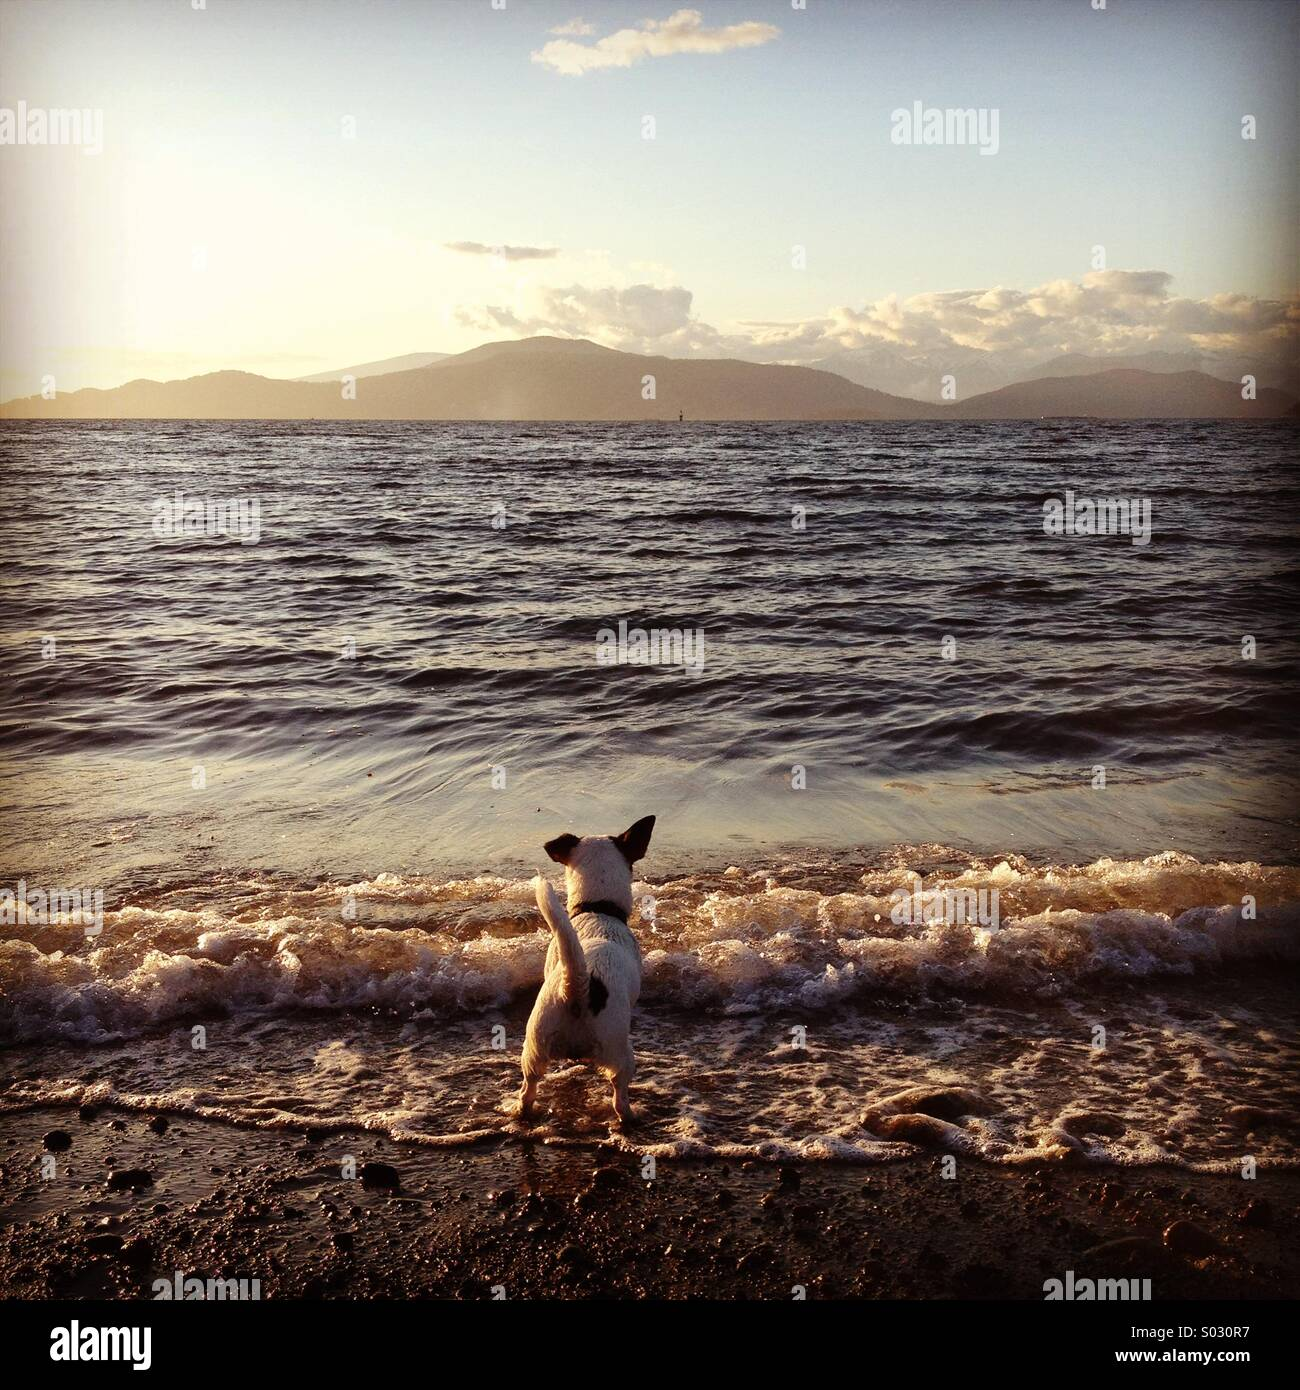 Puppy dog's first steps into the ocean at sunset. - Stock Image